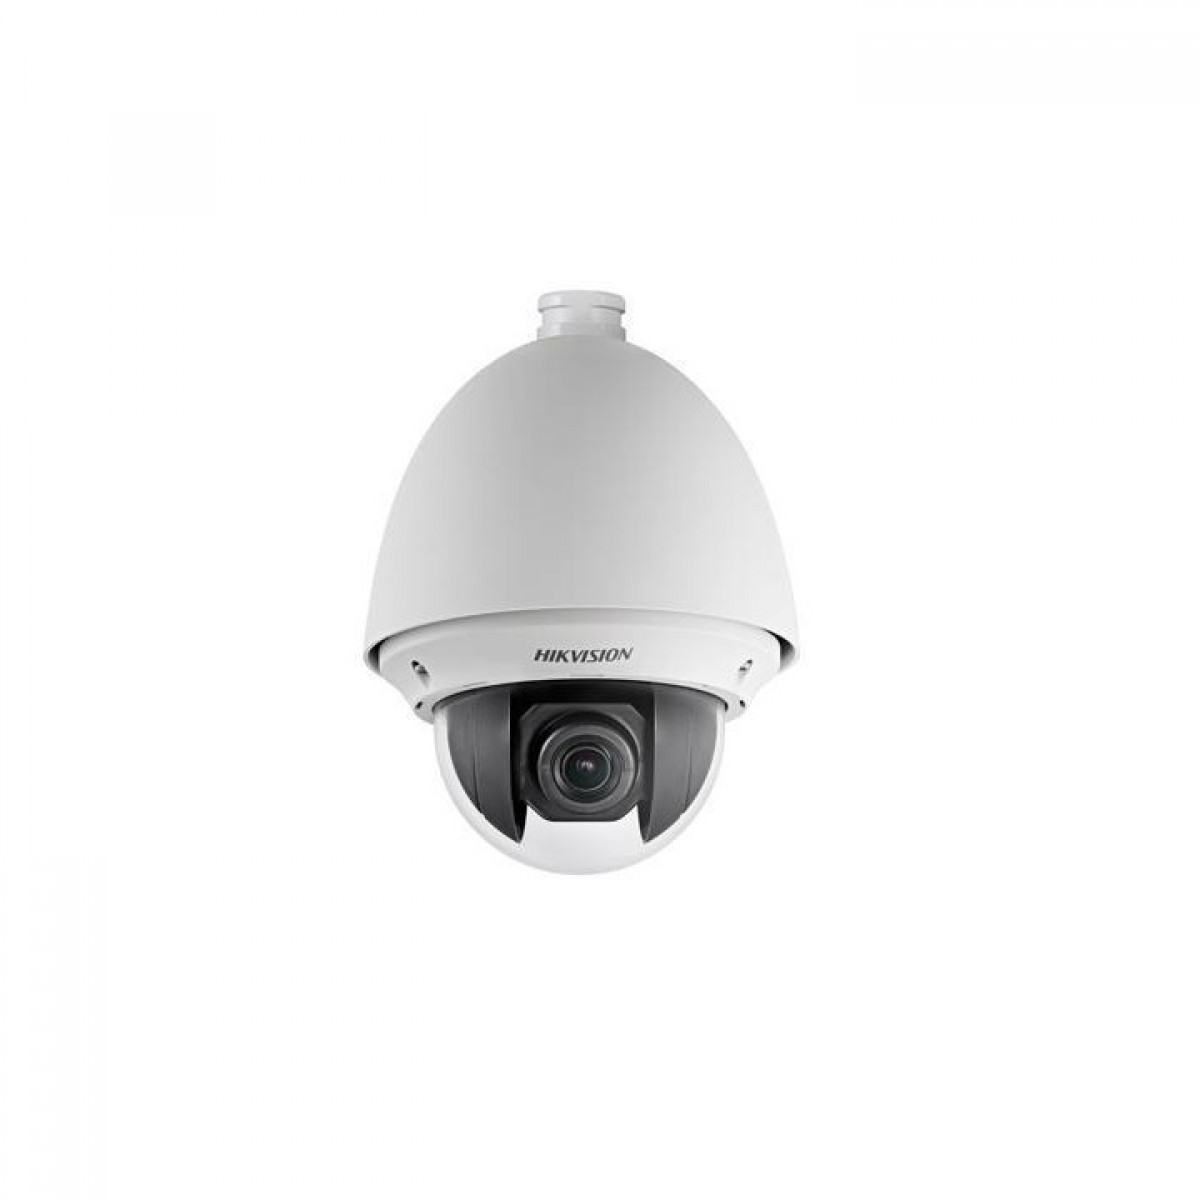 Camera Hikvision DS-2DE4320W-AE3 3MP